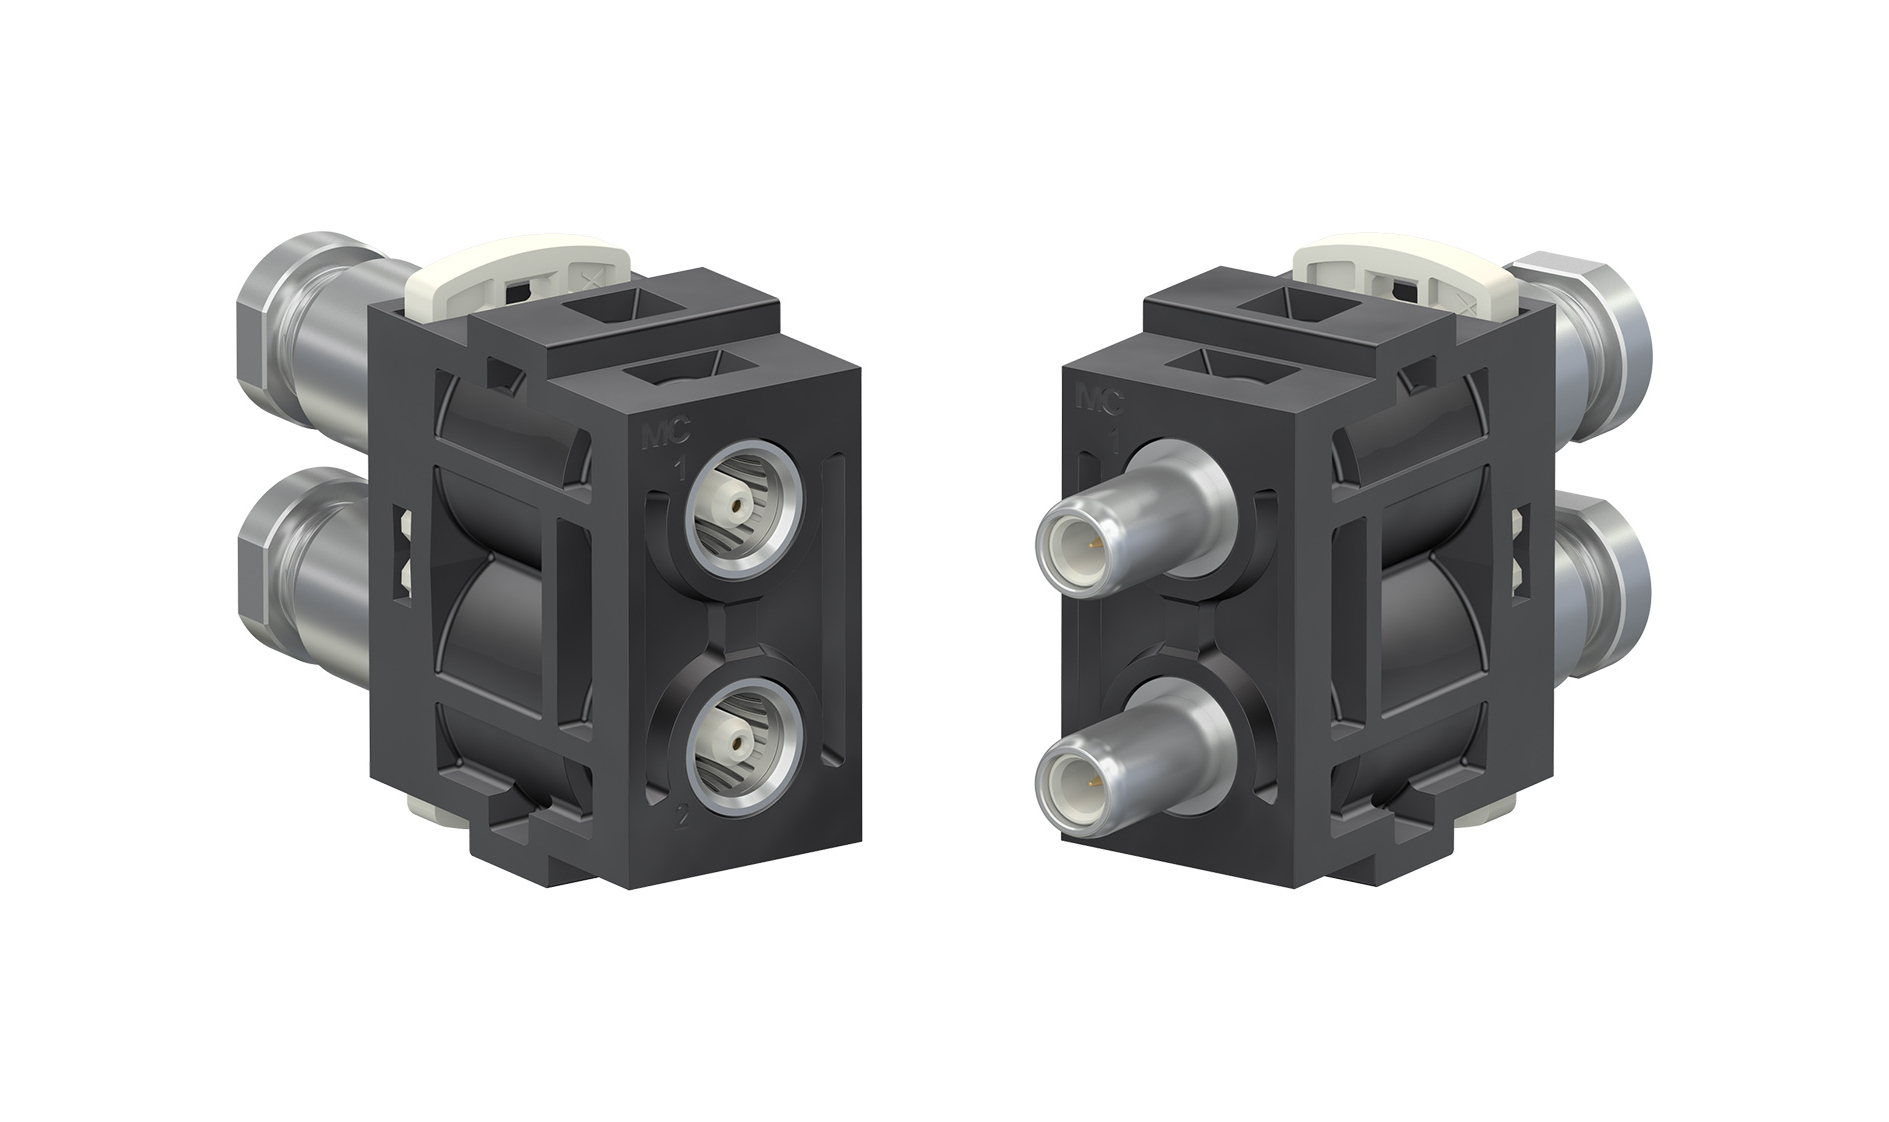 6 GHz coaxial modules for the CombiTac connector system